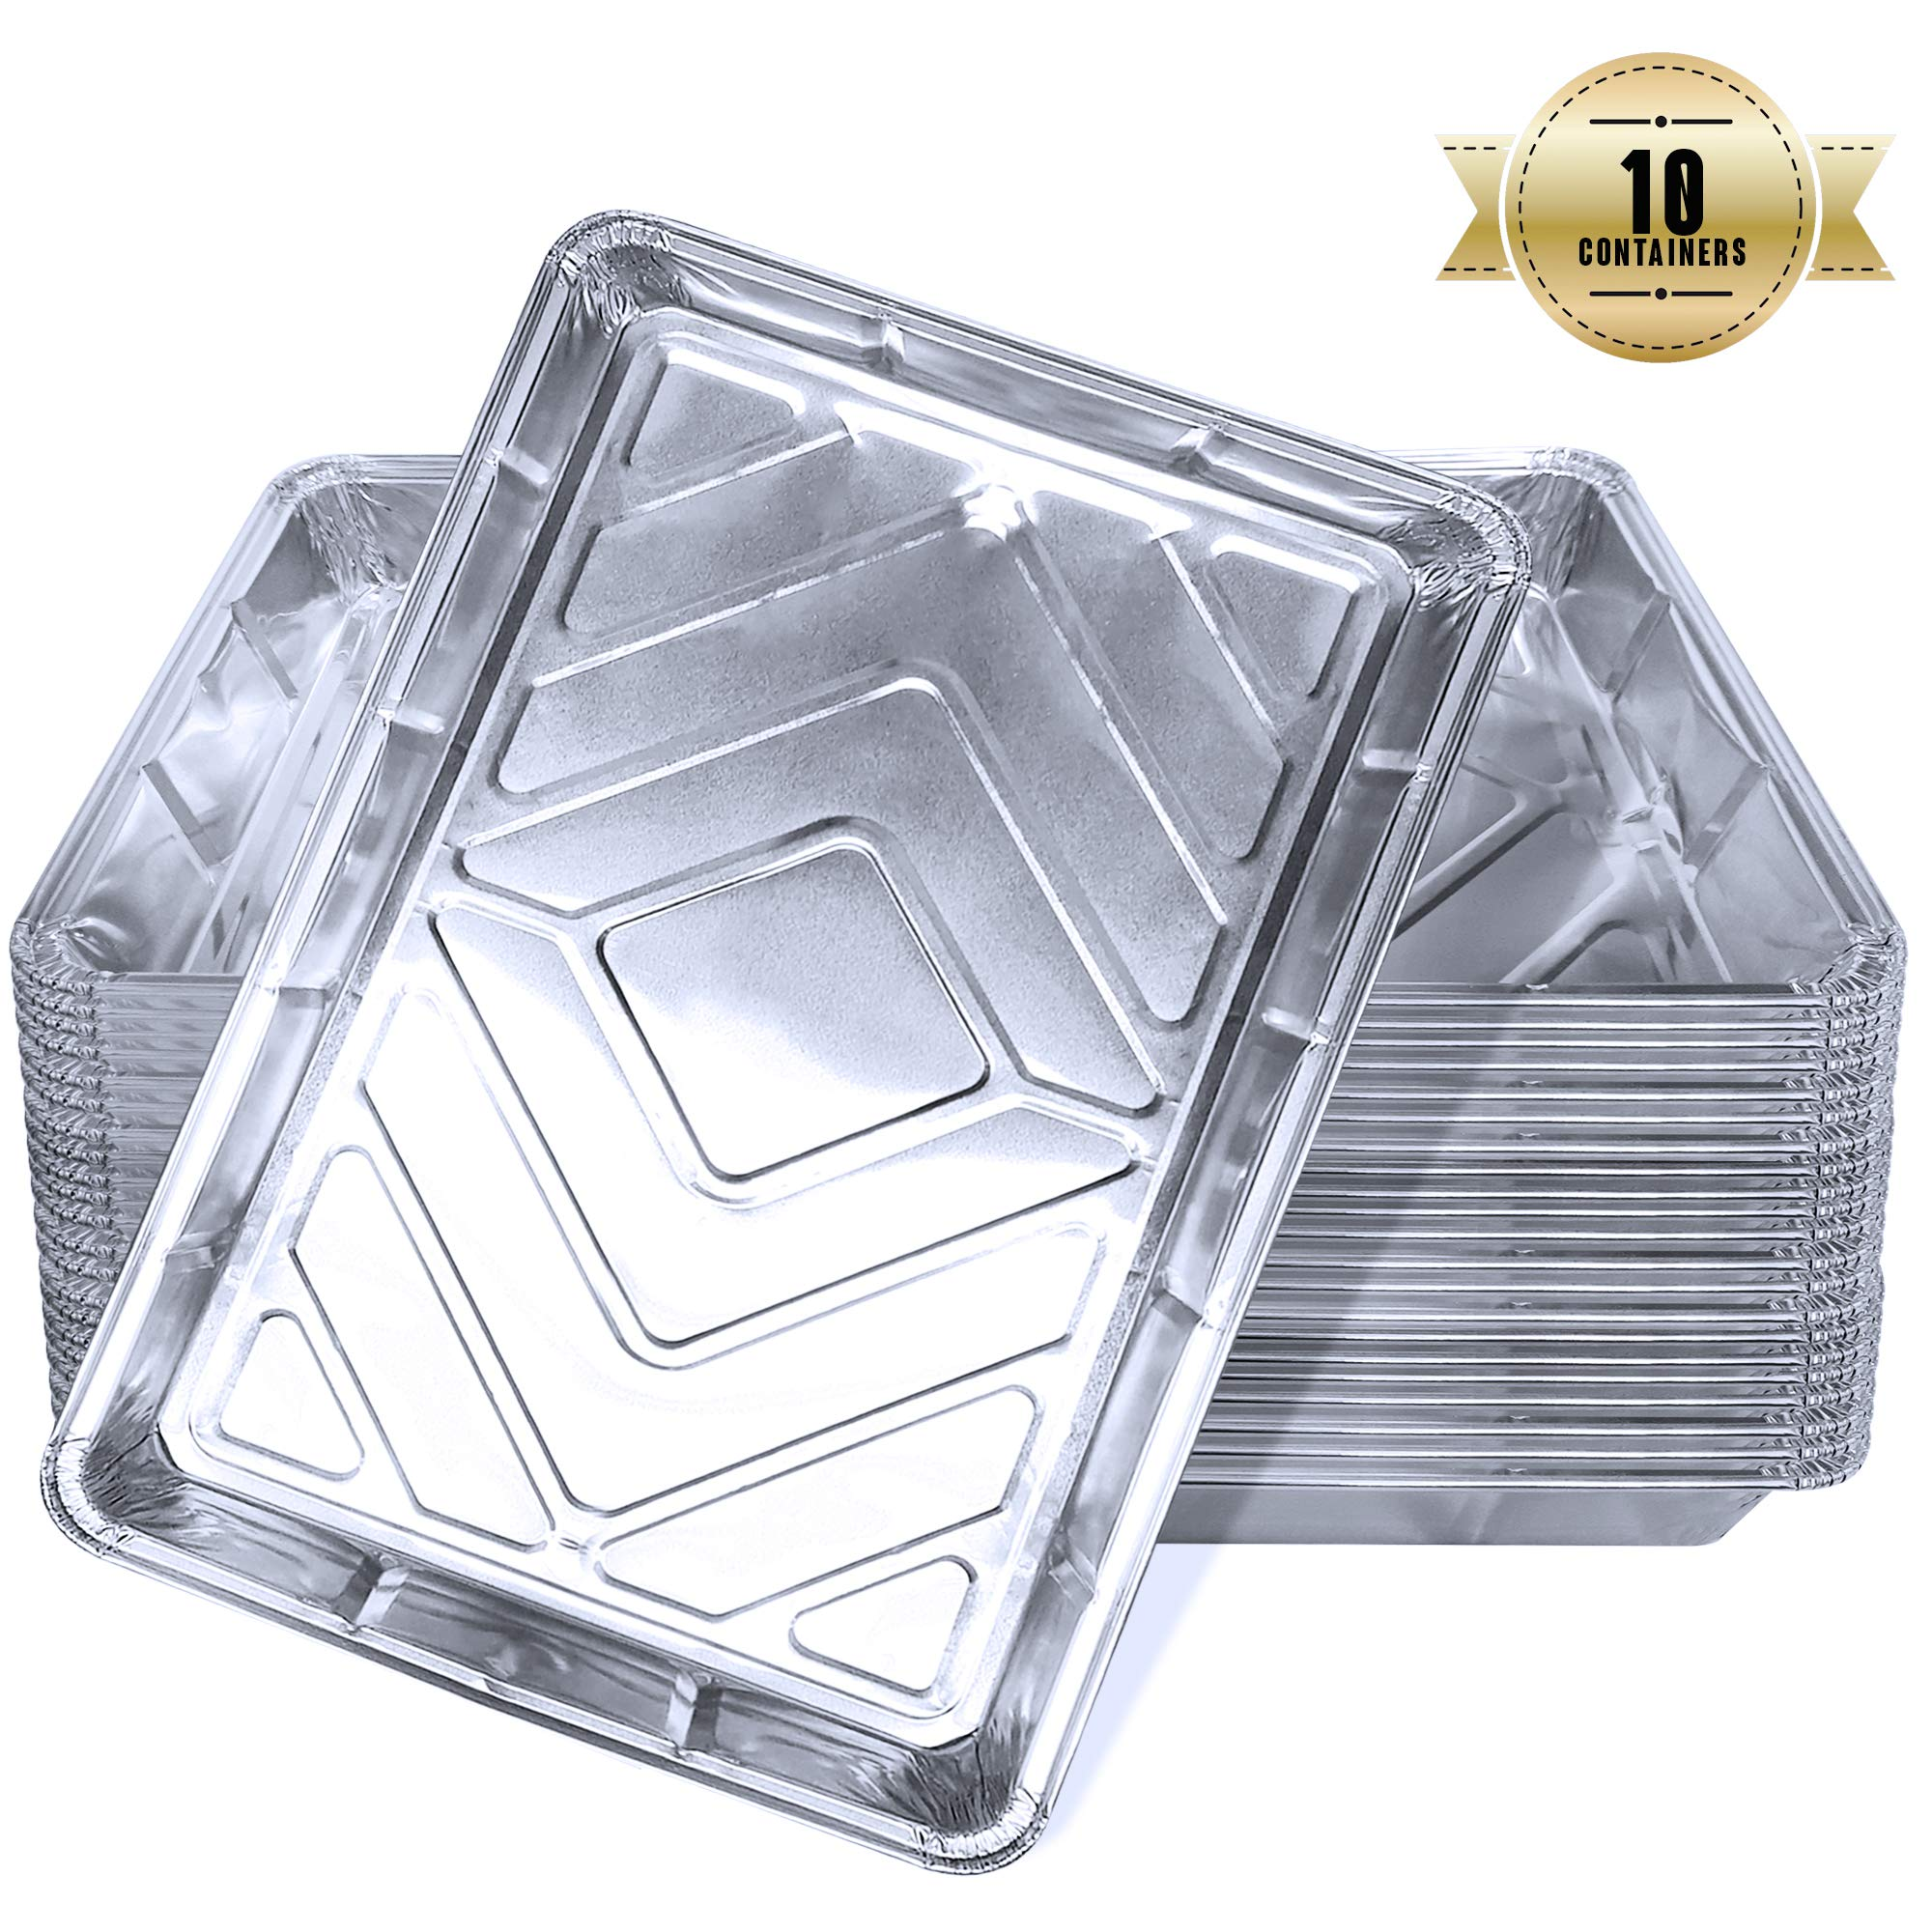 10 Large Foil Tray Bake containers Aluminium Recyclable 12 x 8 Includes a Free 21 Disposable Piping Bag!